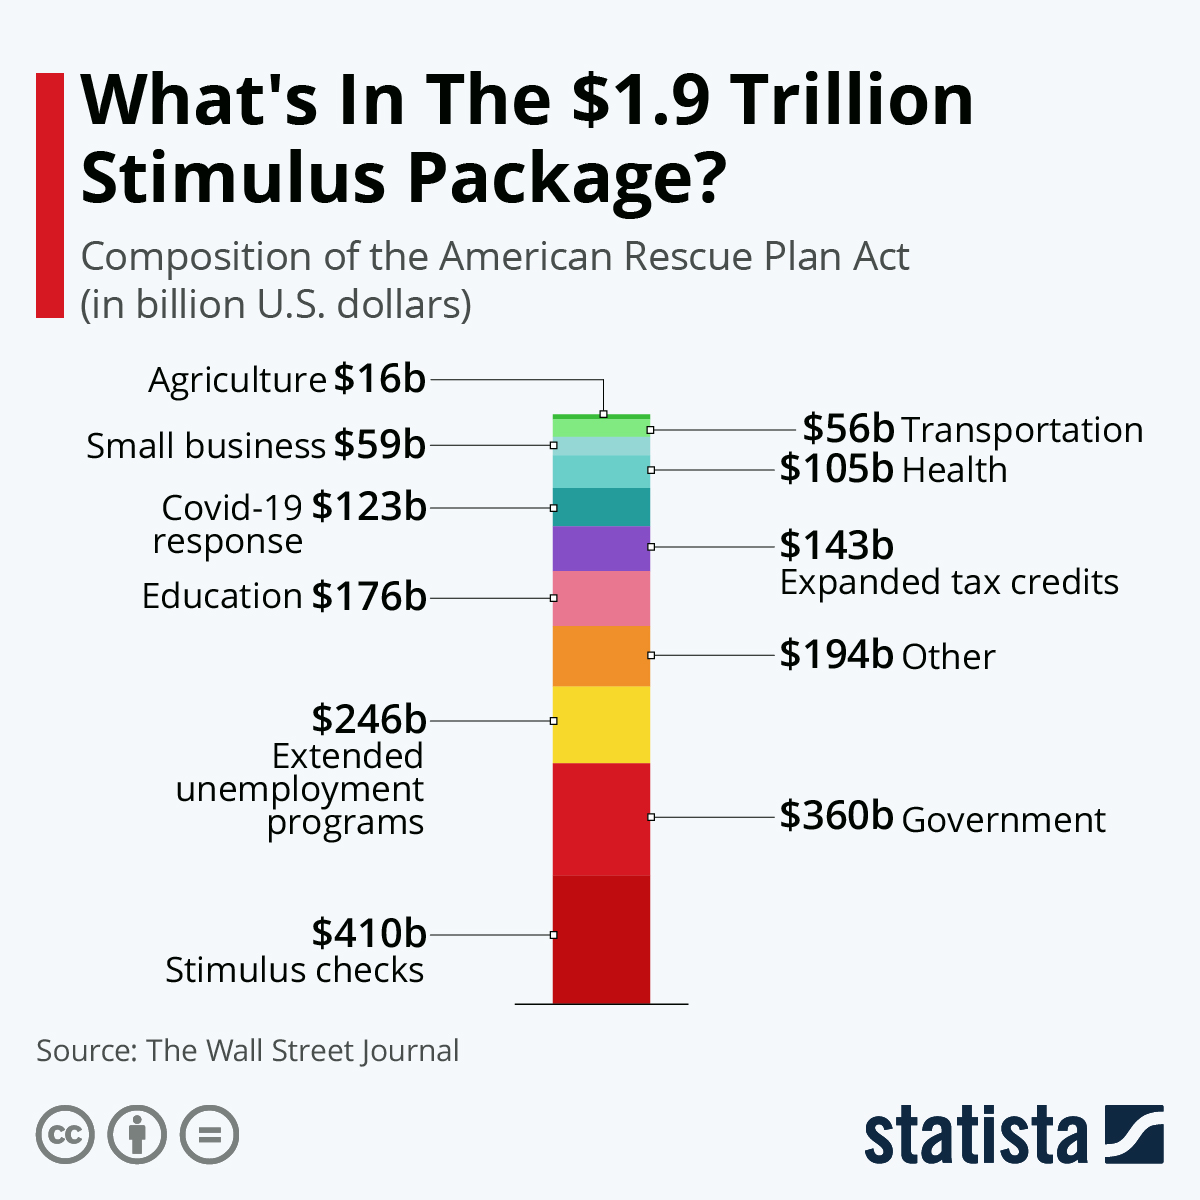 Detailing the $1.9 trillion stimulus package